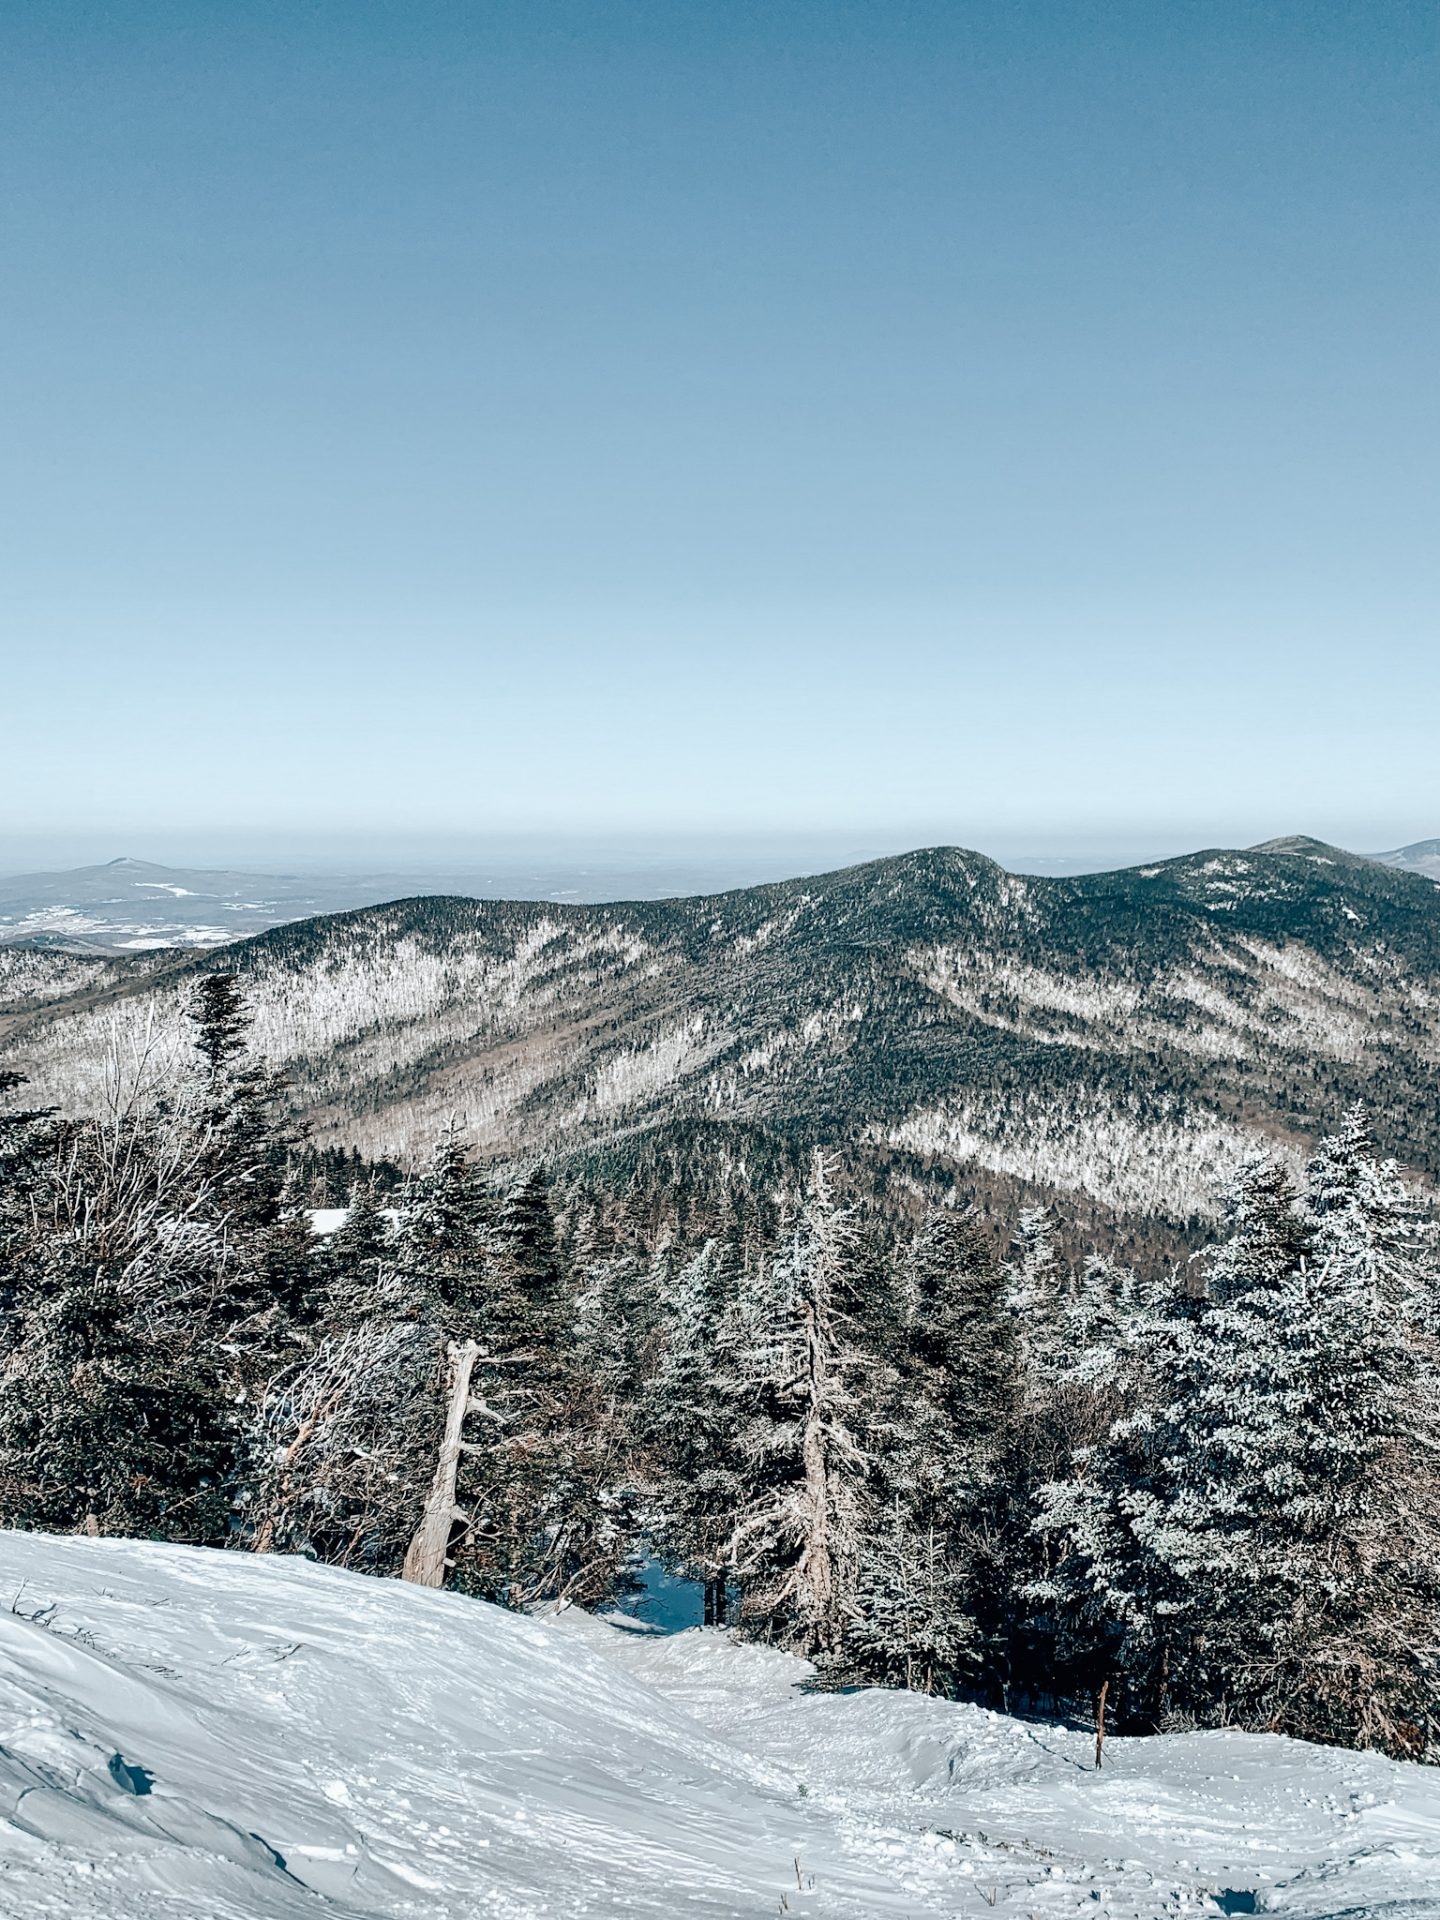 View of mountain from one of the best ski resorts in New England